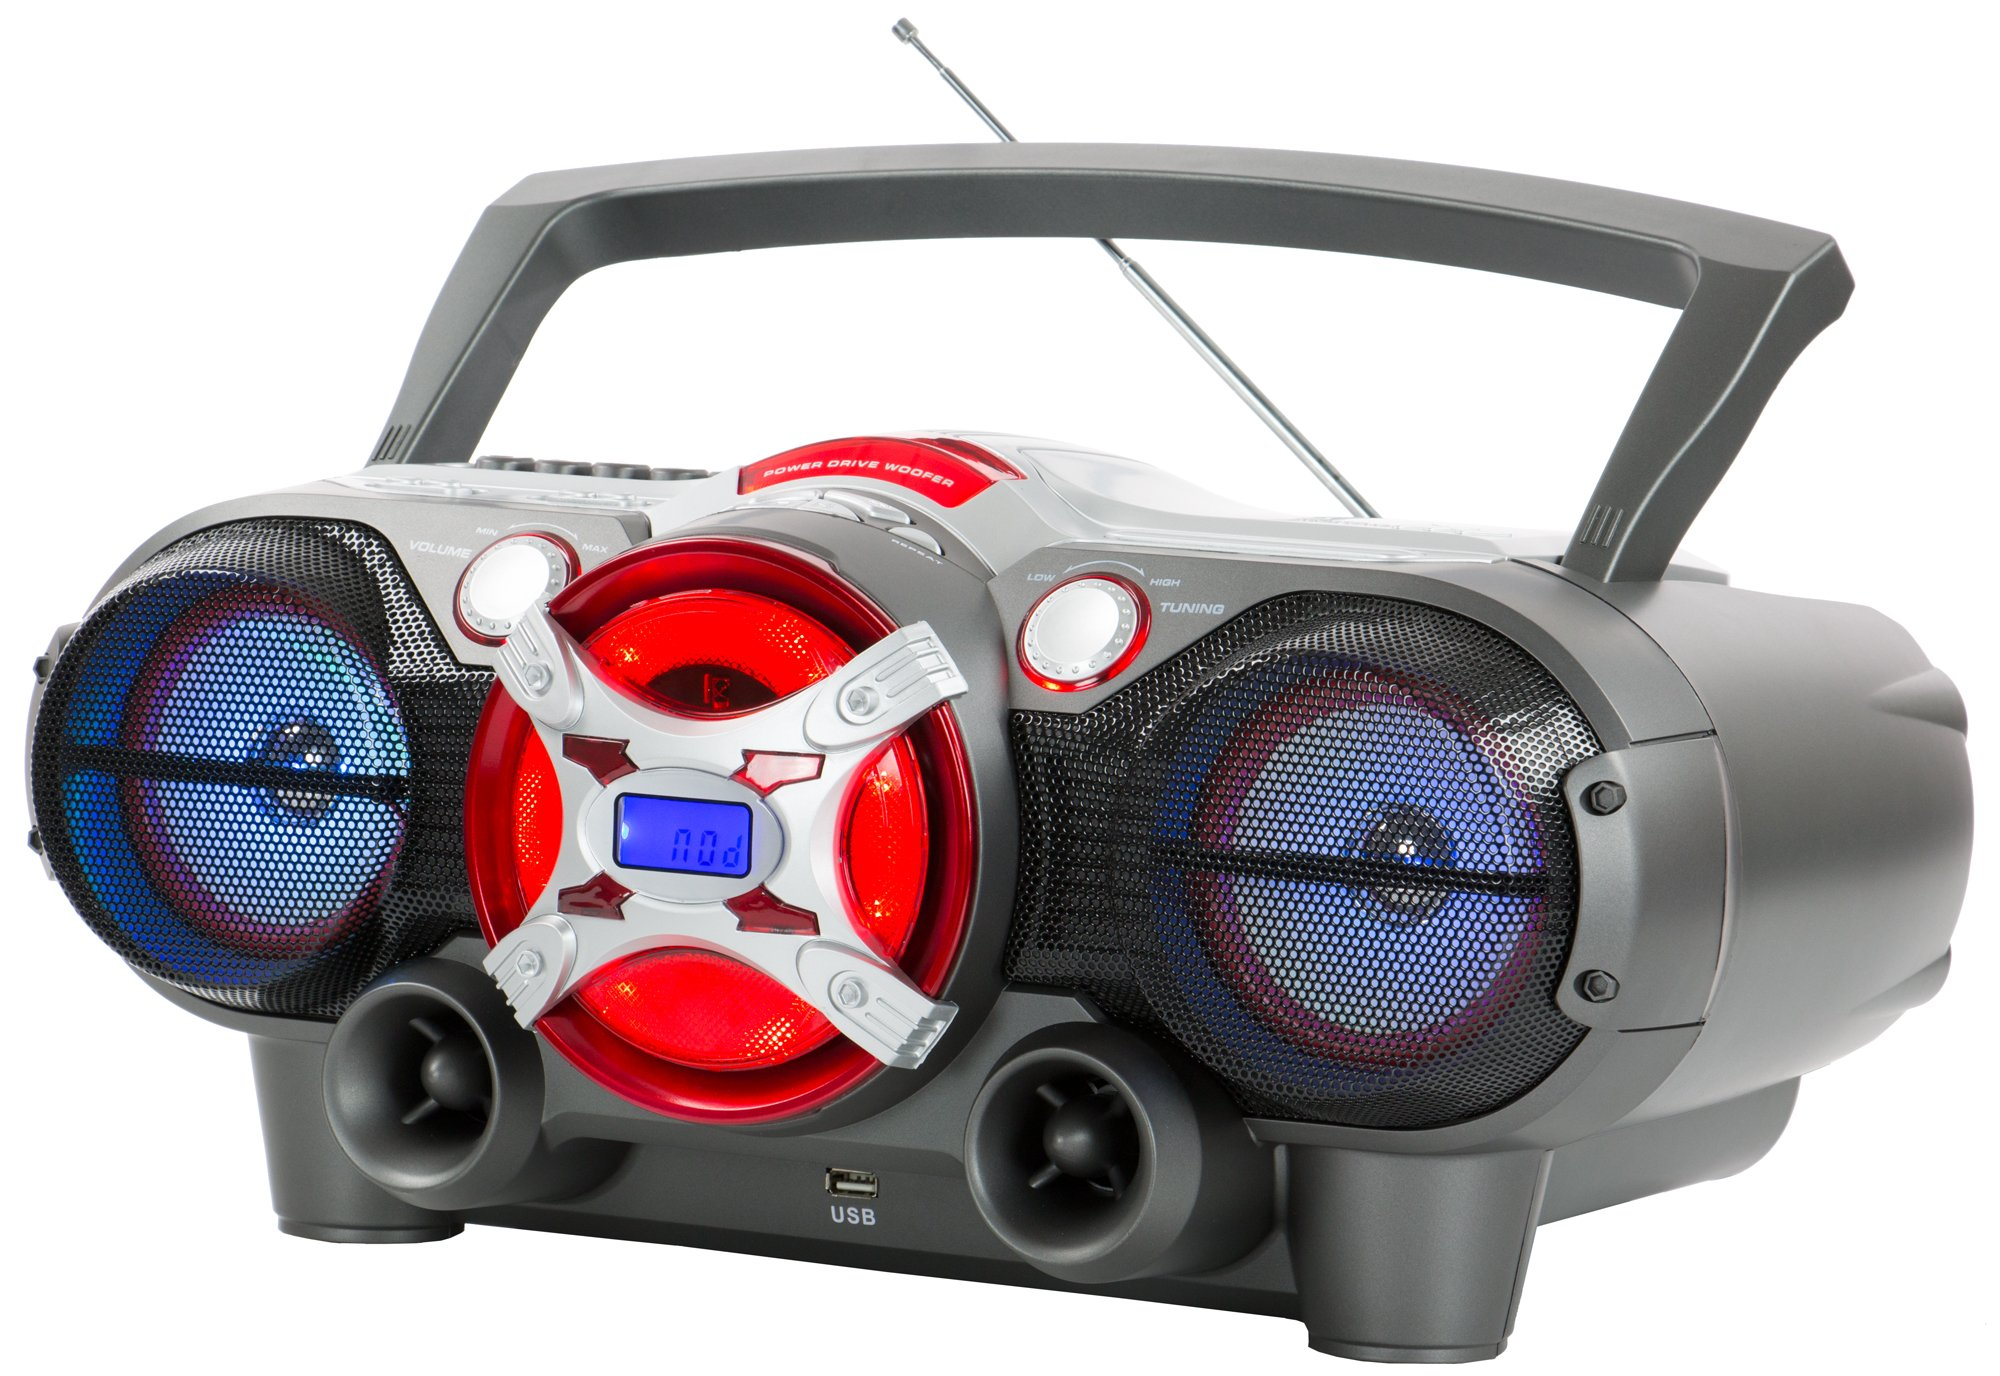 QFX J-50U Portable Jumbo Bluetooth Boombox Radio with MP3/CD Player and Cassette Recorder by QFX